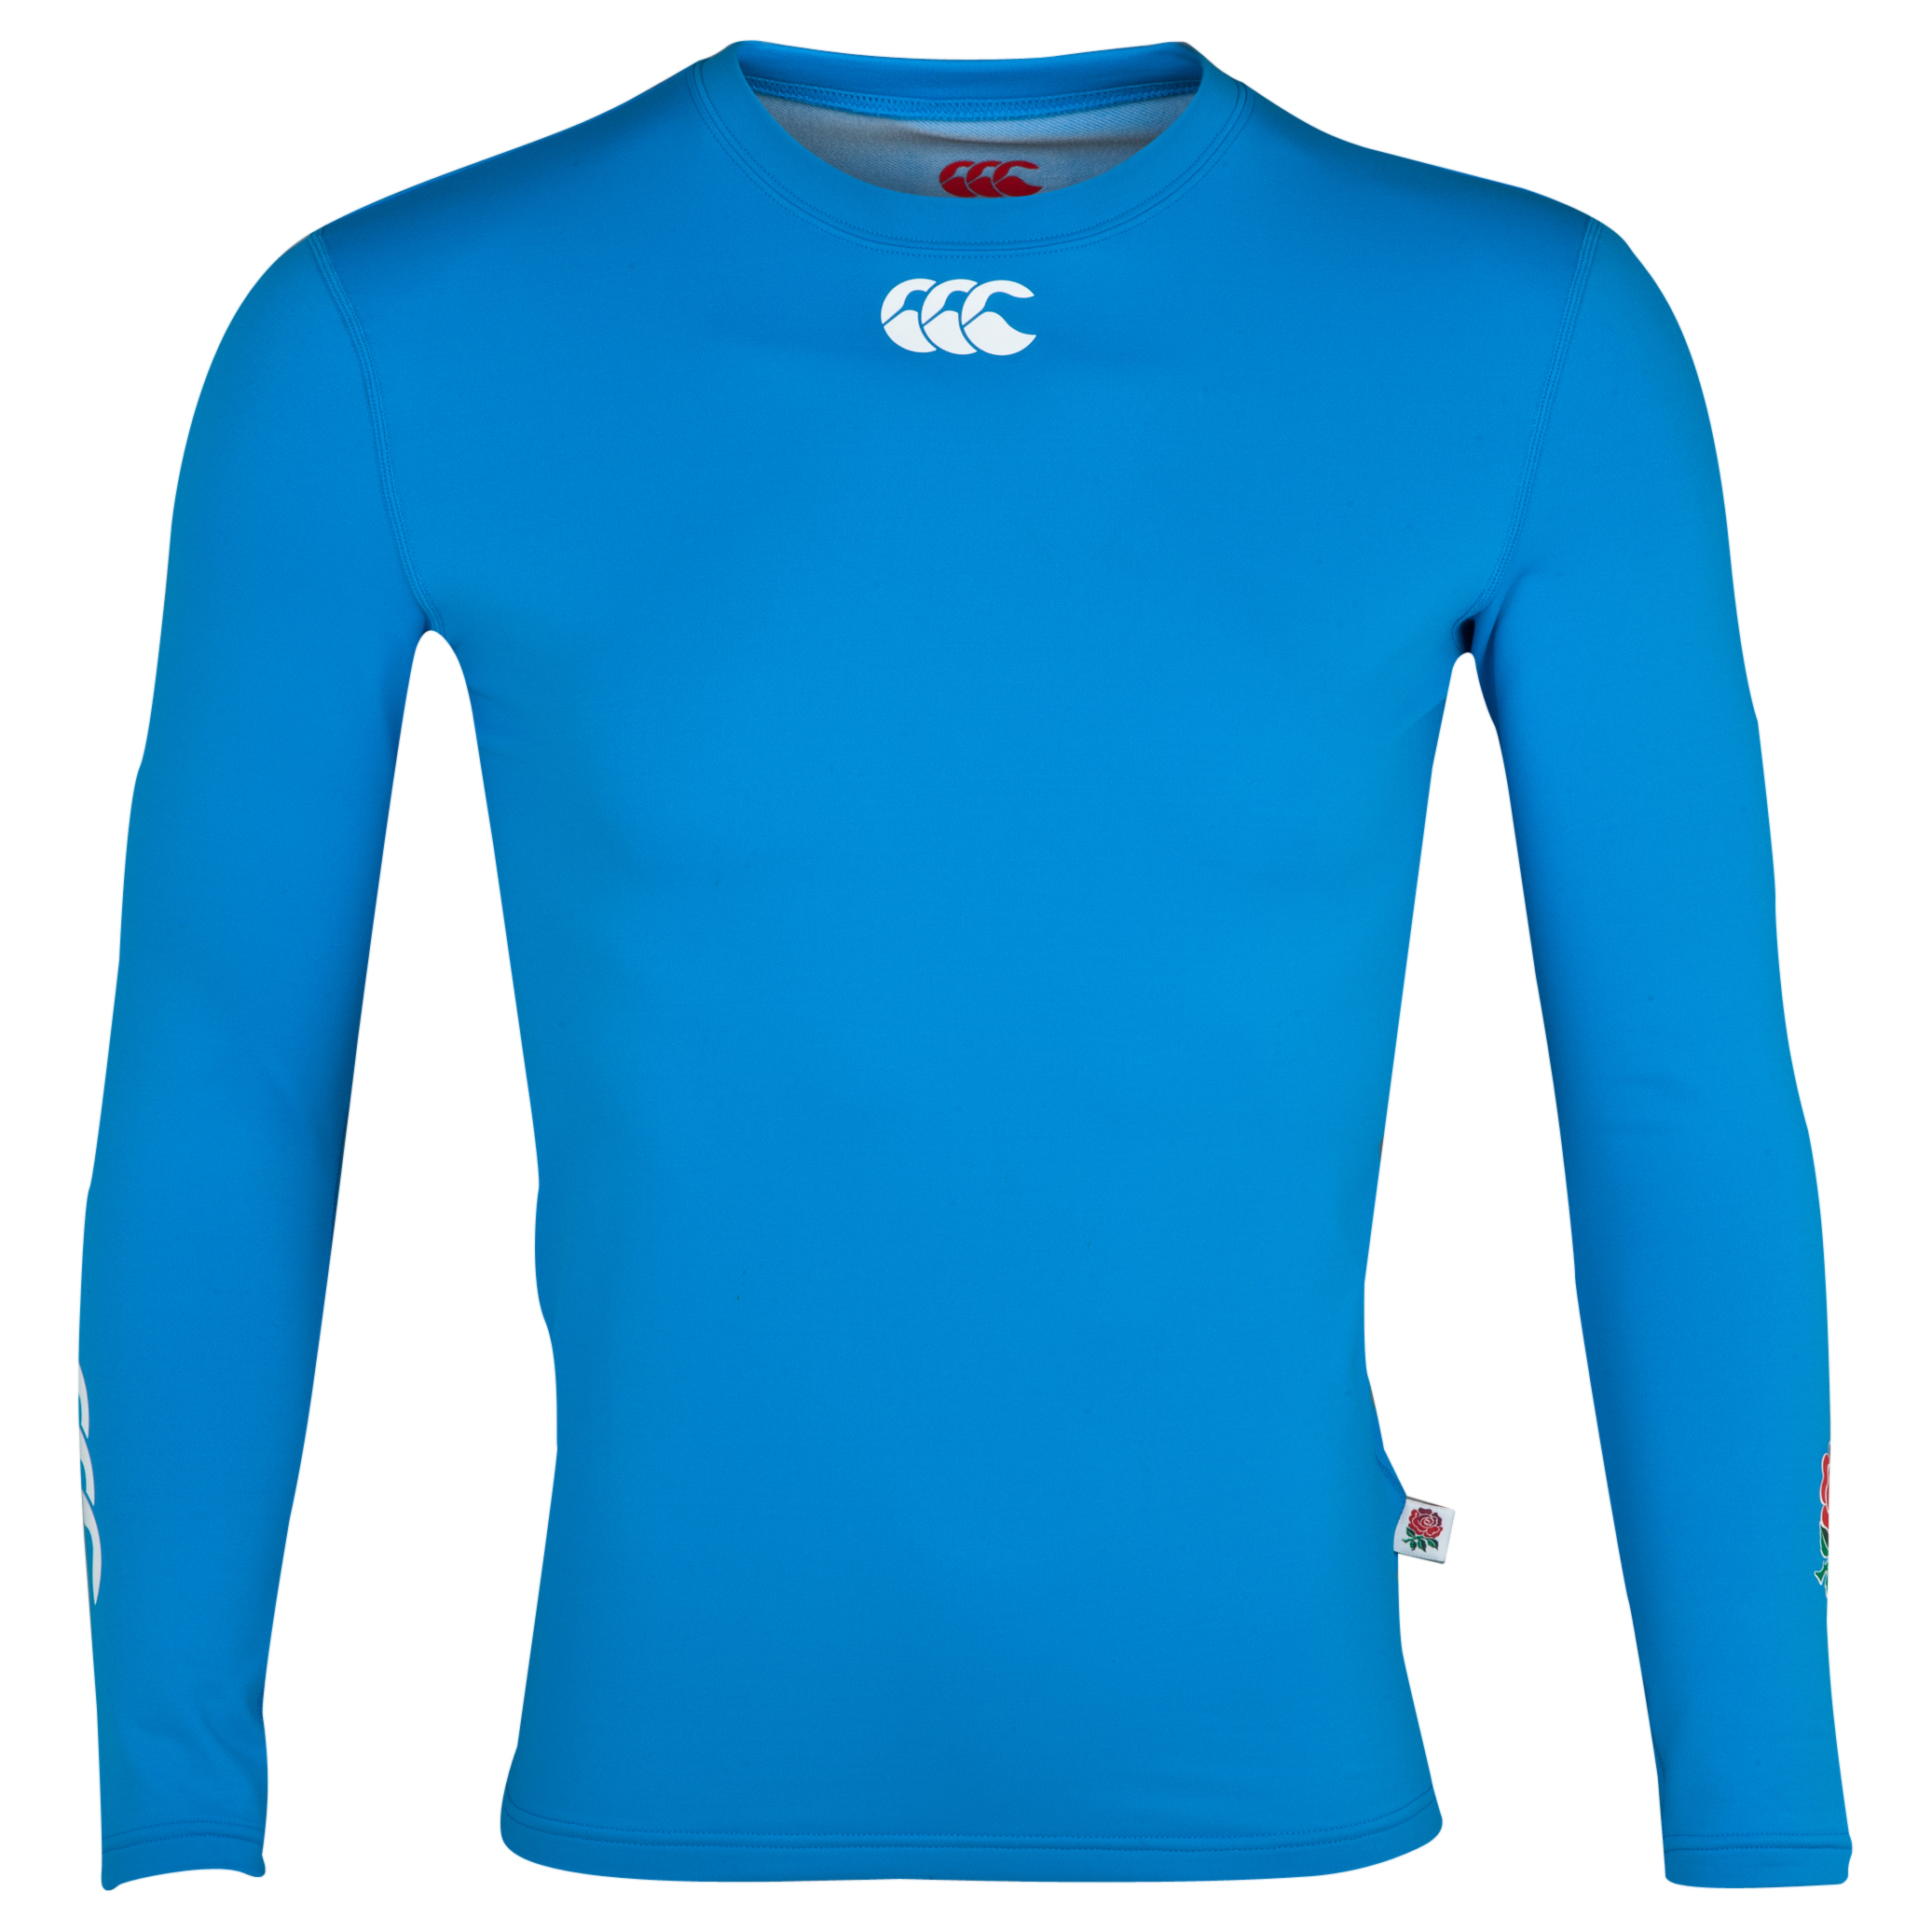 England Cold Baselayer Top - Vivid Blue - Long Sleeved